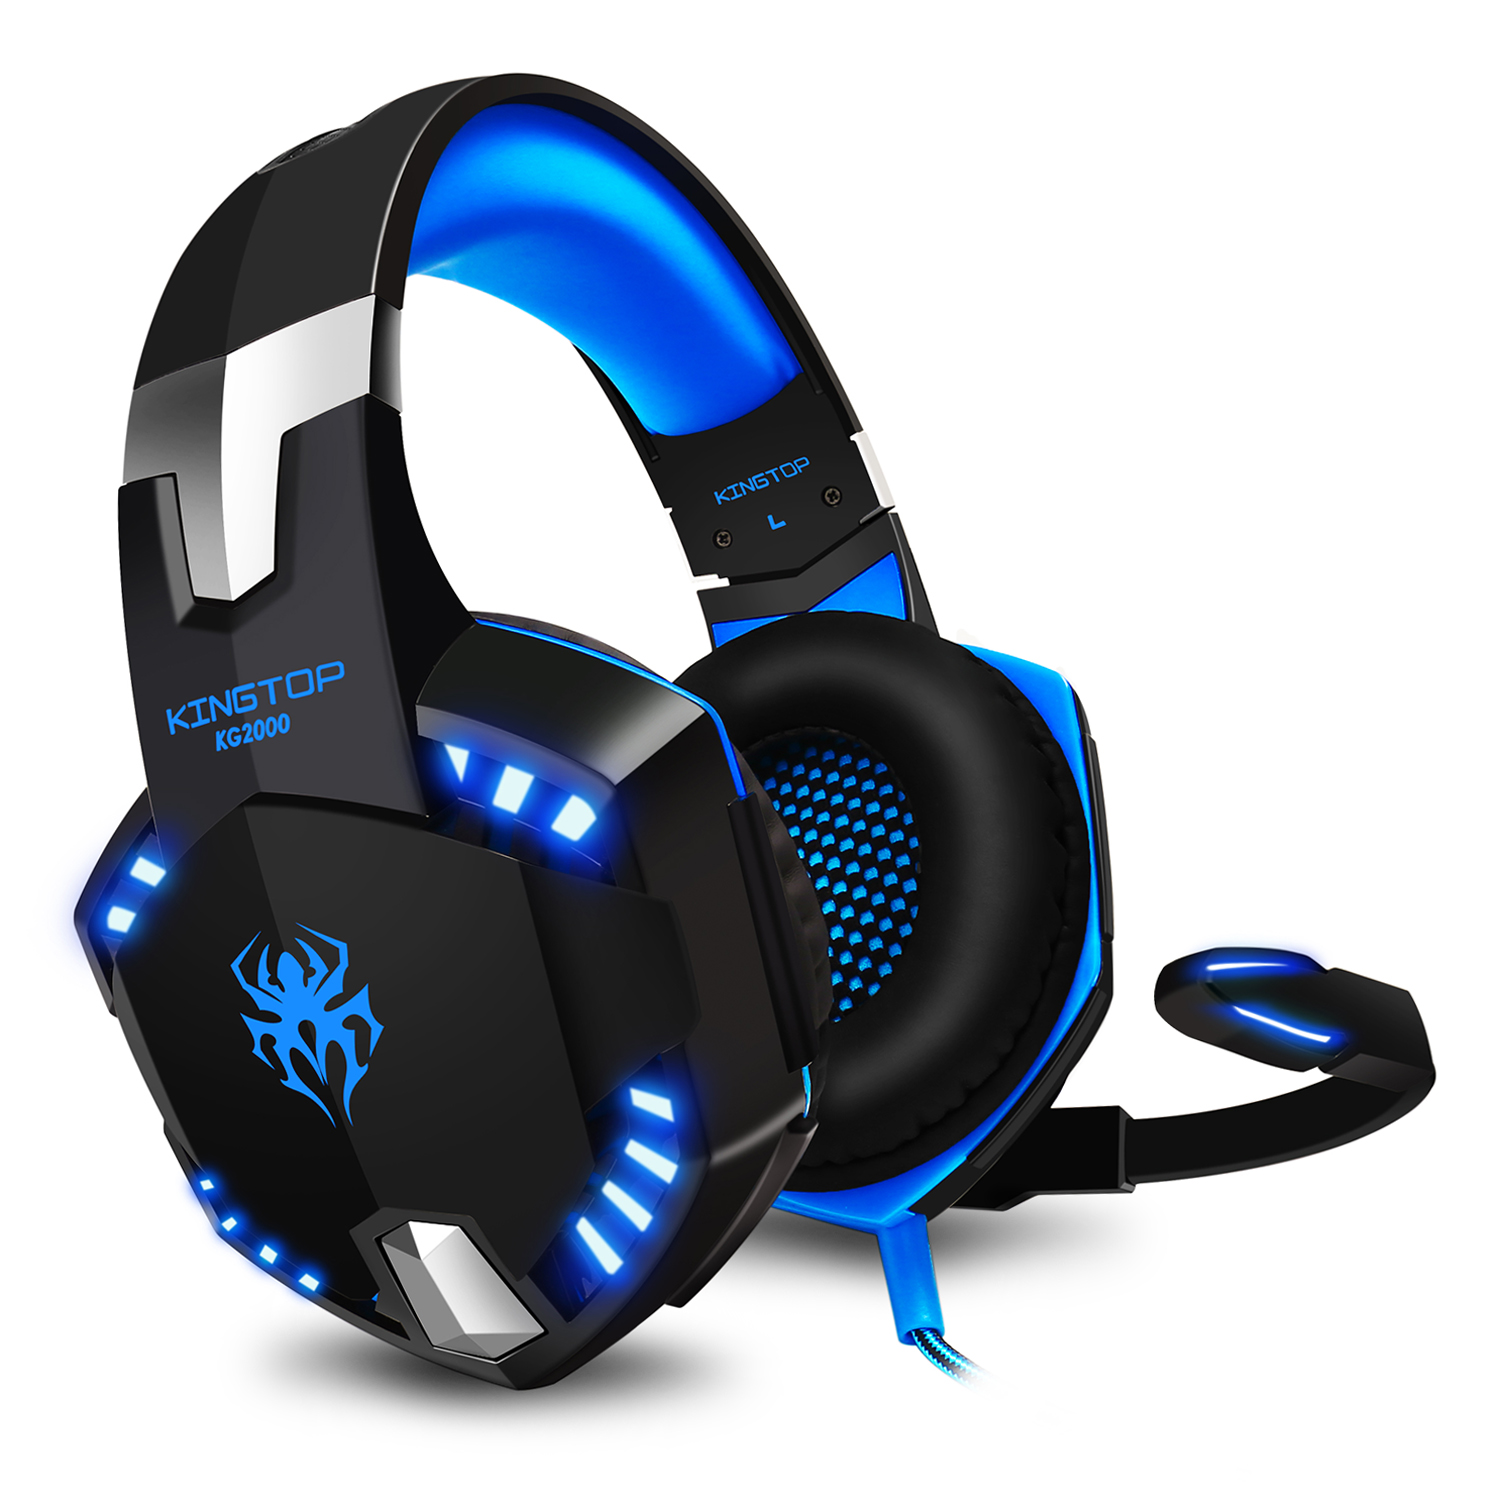 KINGTOP Gaming Headset PS4 KG2000 Wired Stereo Gamer Headphones